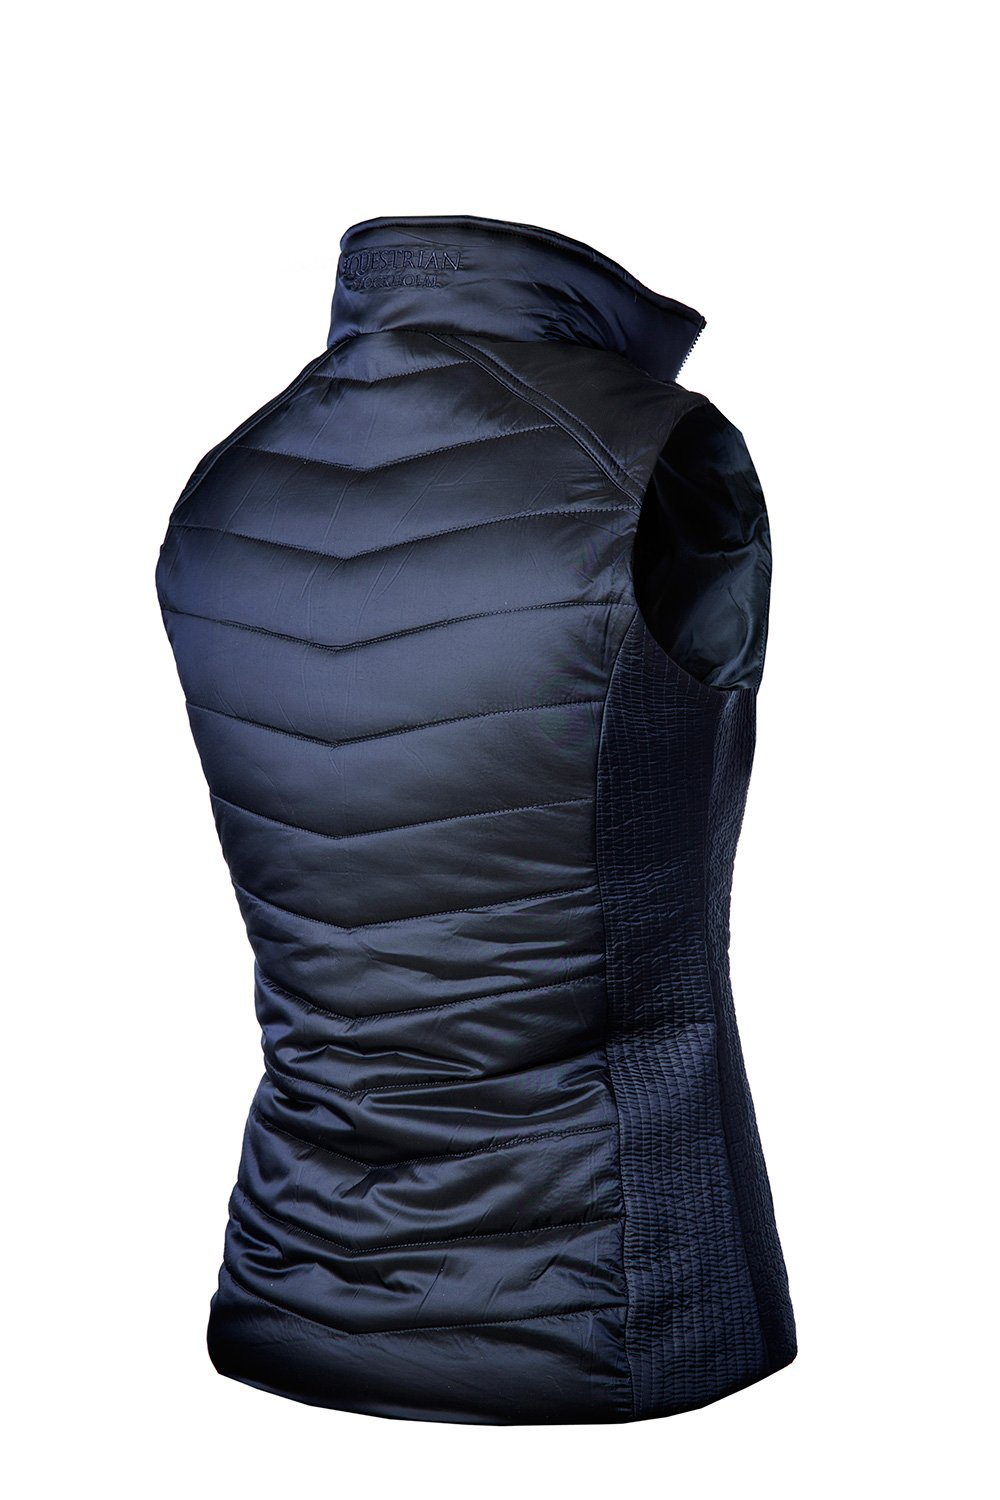 Equestrian Stockholm Navy Classic Vest